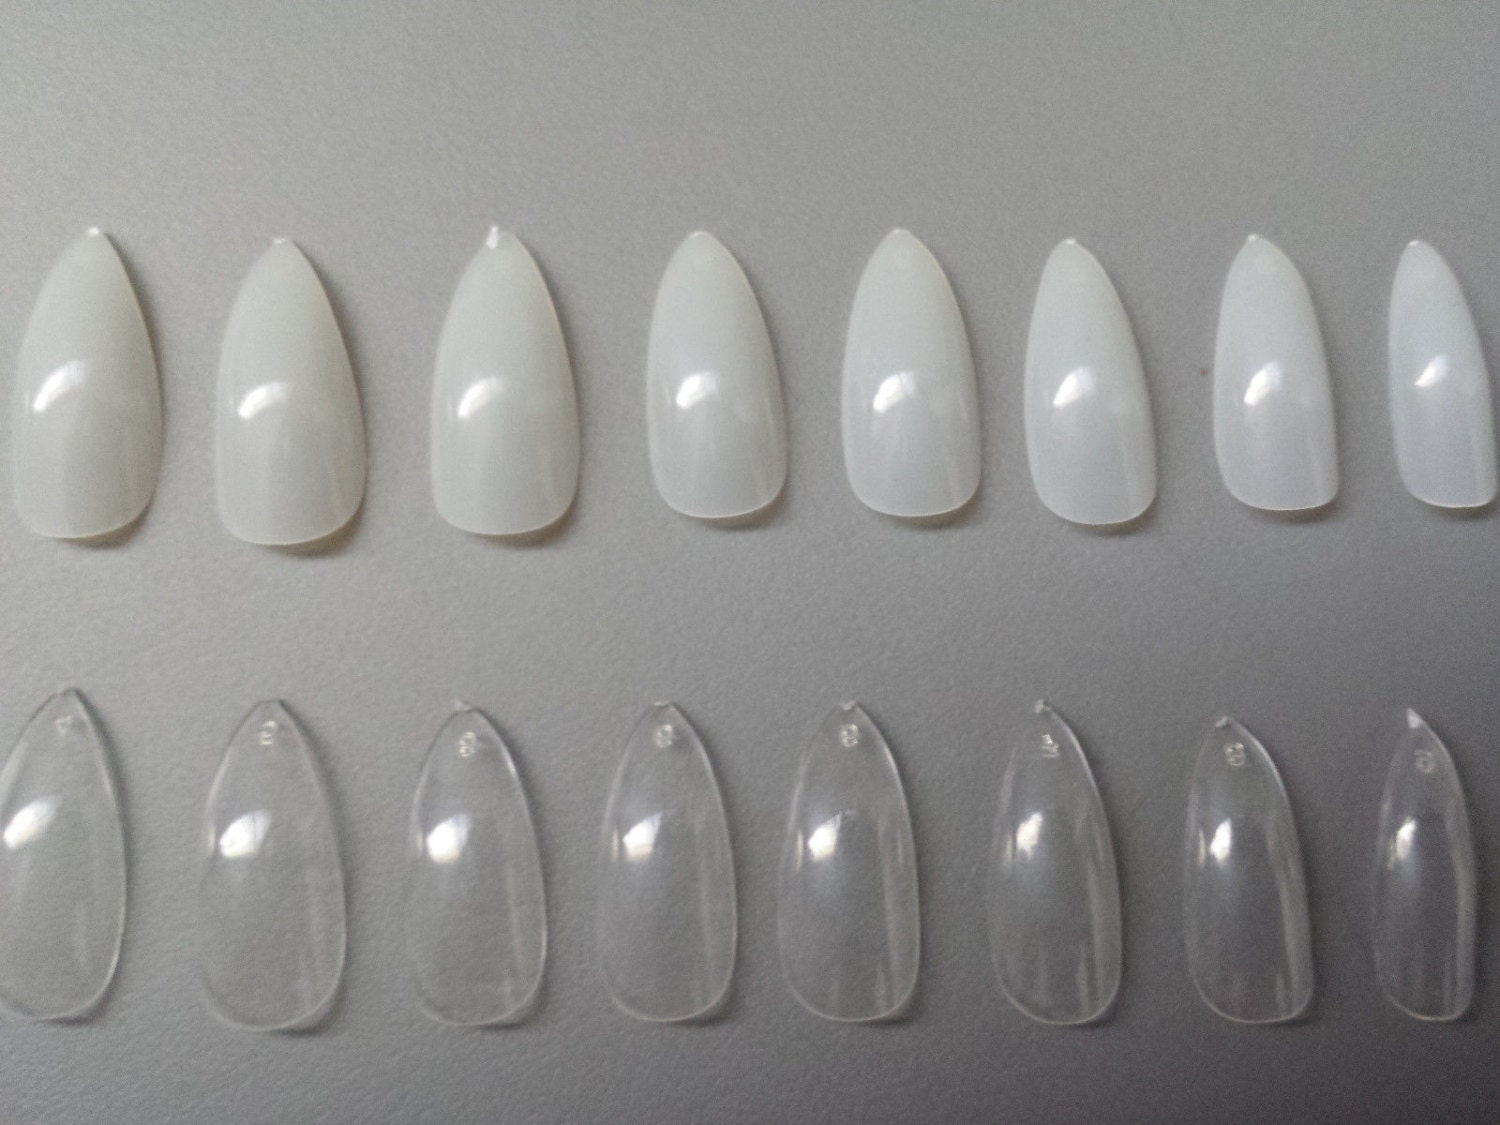 24 stiletto nails press on nails glue on nails pointy zoom solutioingenieria Image collections